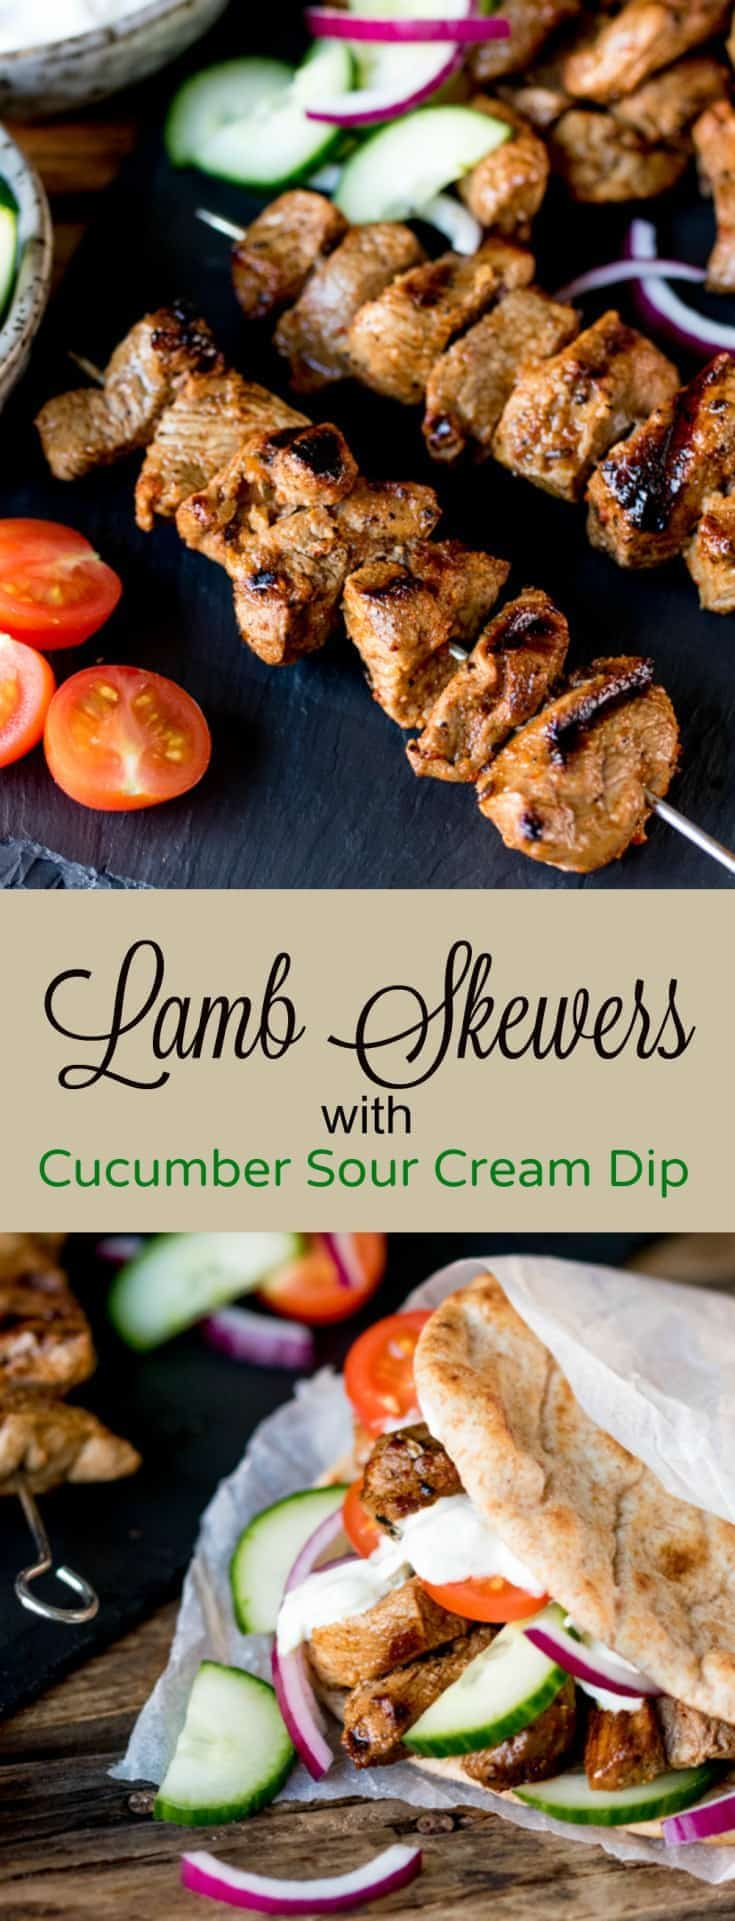 This recipe for Lamb Skewers with Cucumber Sour Cream Dip is juicy lamb skewers packed full of spicy garlic Cajun flavour, grilled until lightly charred and served with a cool sour cream dip, the dip is a take on Tzatziki #skewers #kabobs #lambskewers #tzatziki